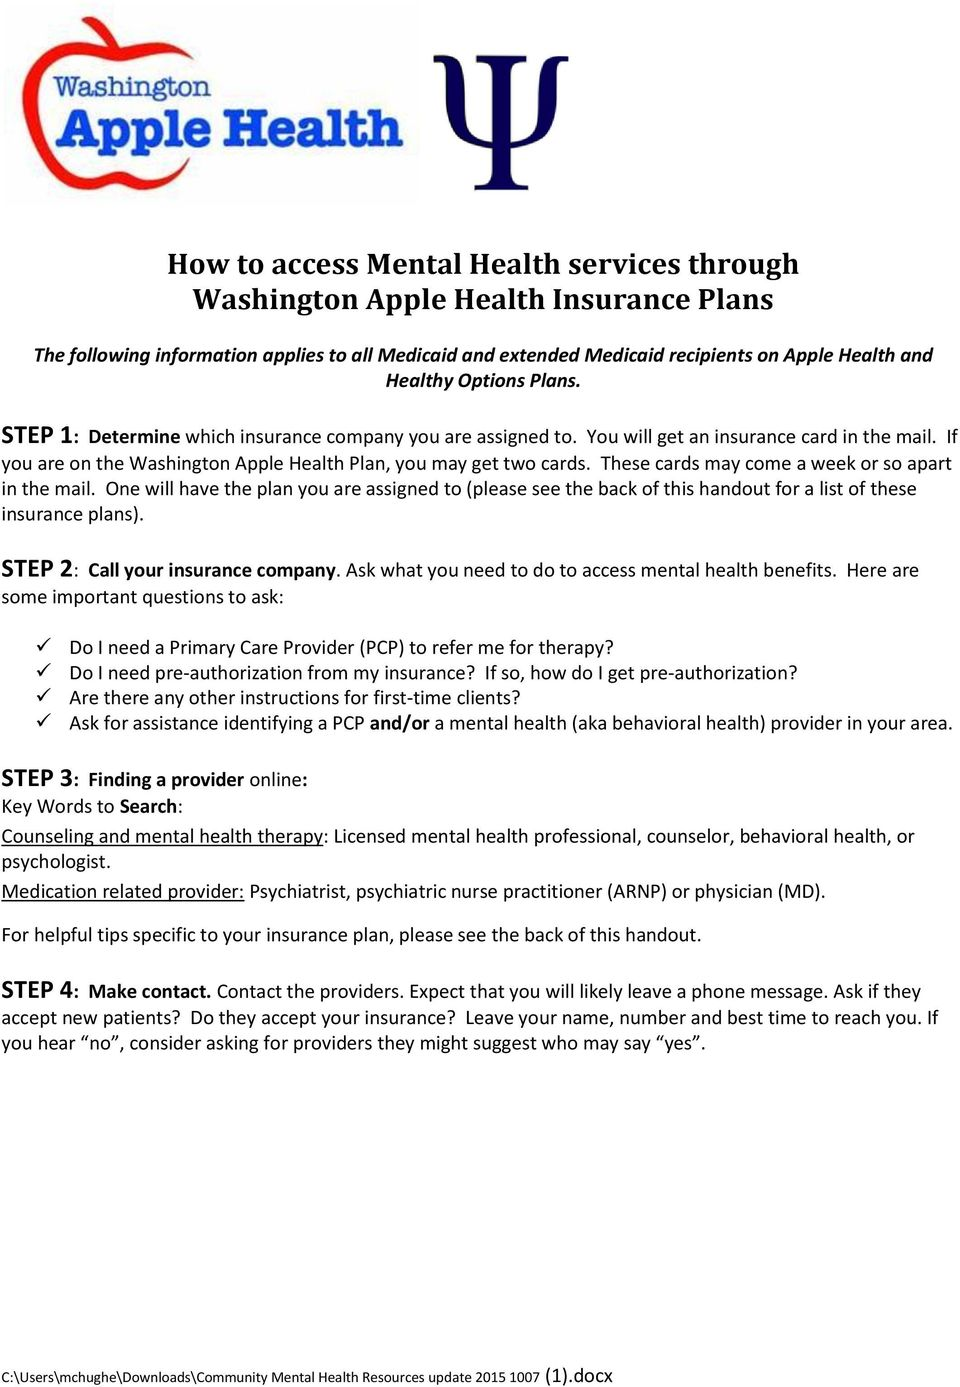 Community Mental Health Resources Pdf